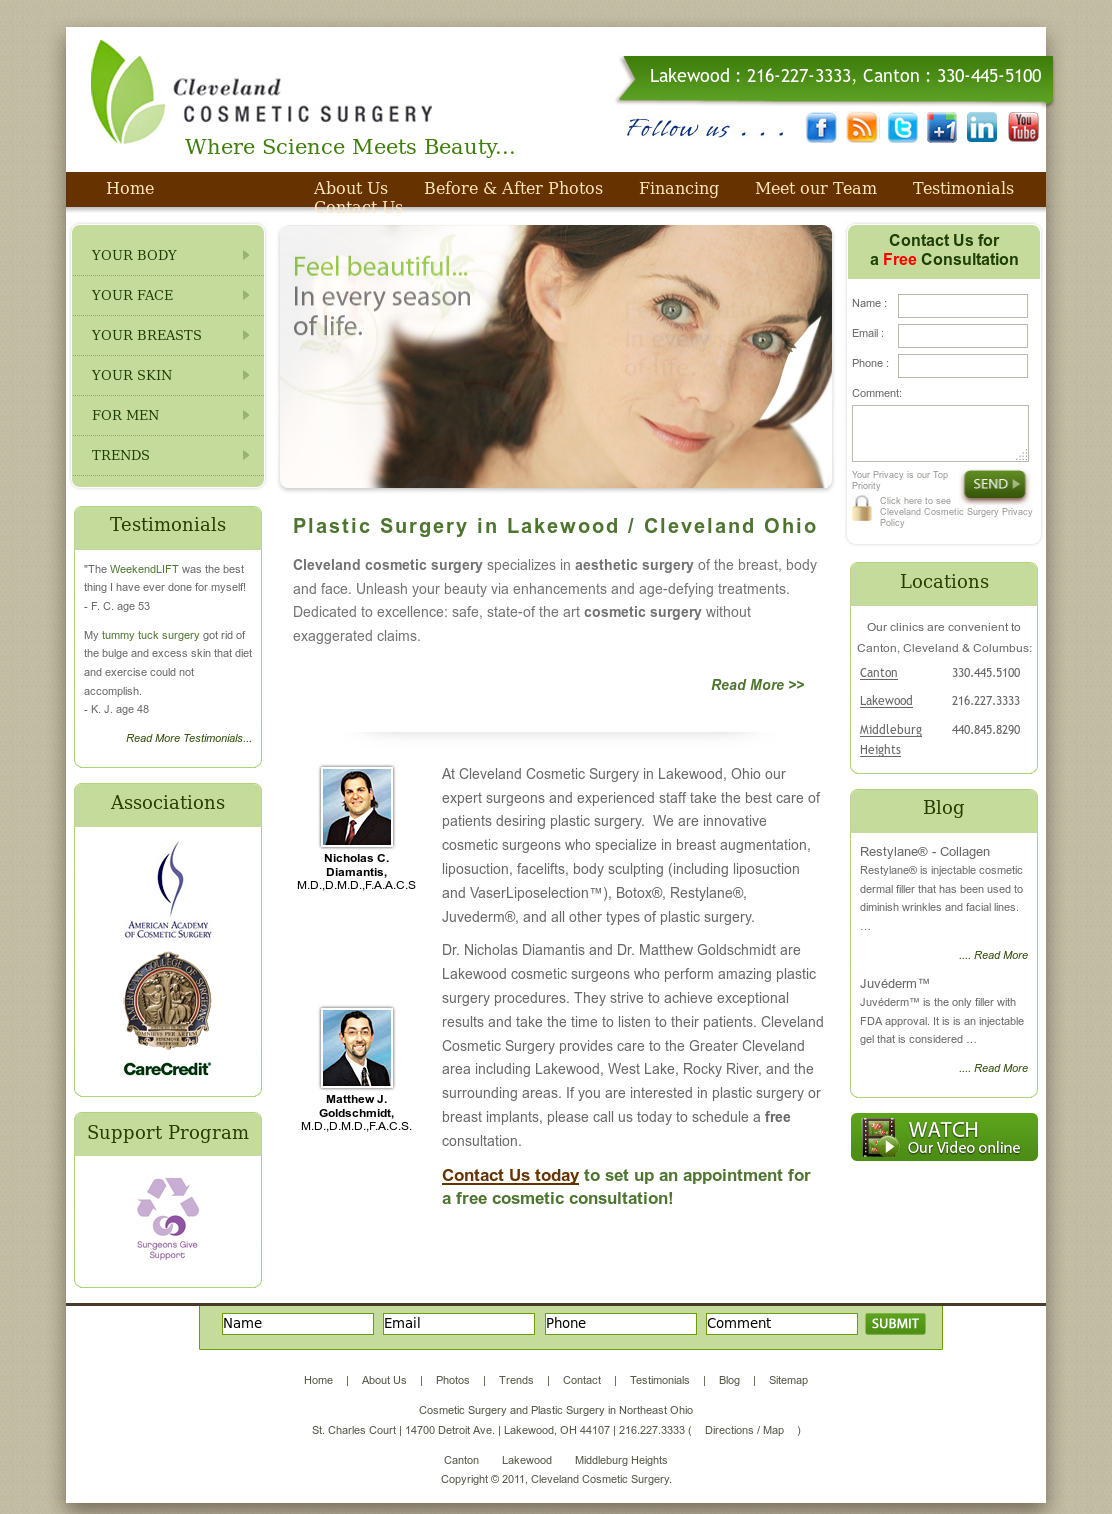 Cleveland Cosmetic Surgery Competitors, Revenue and